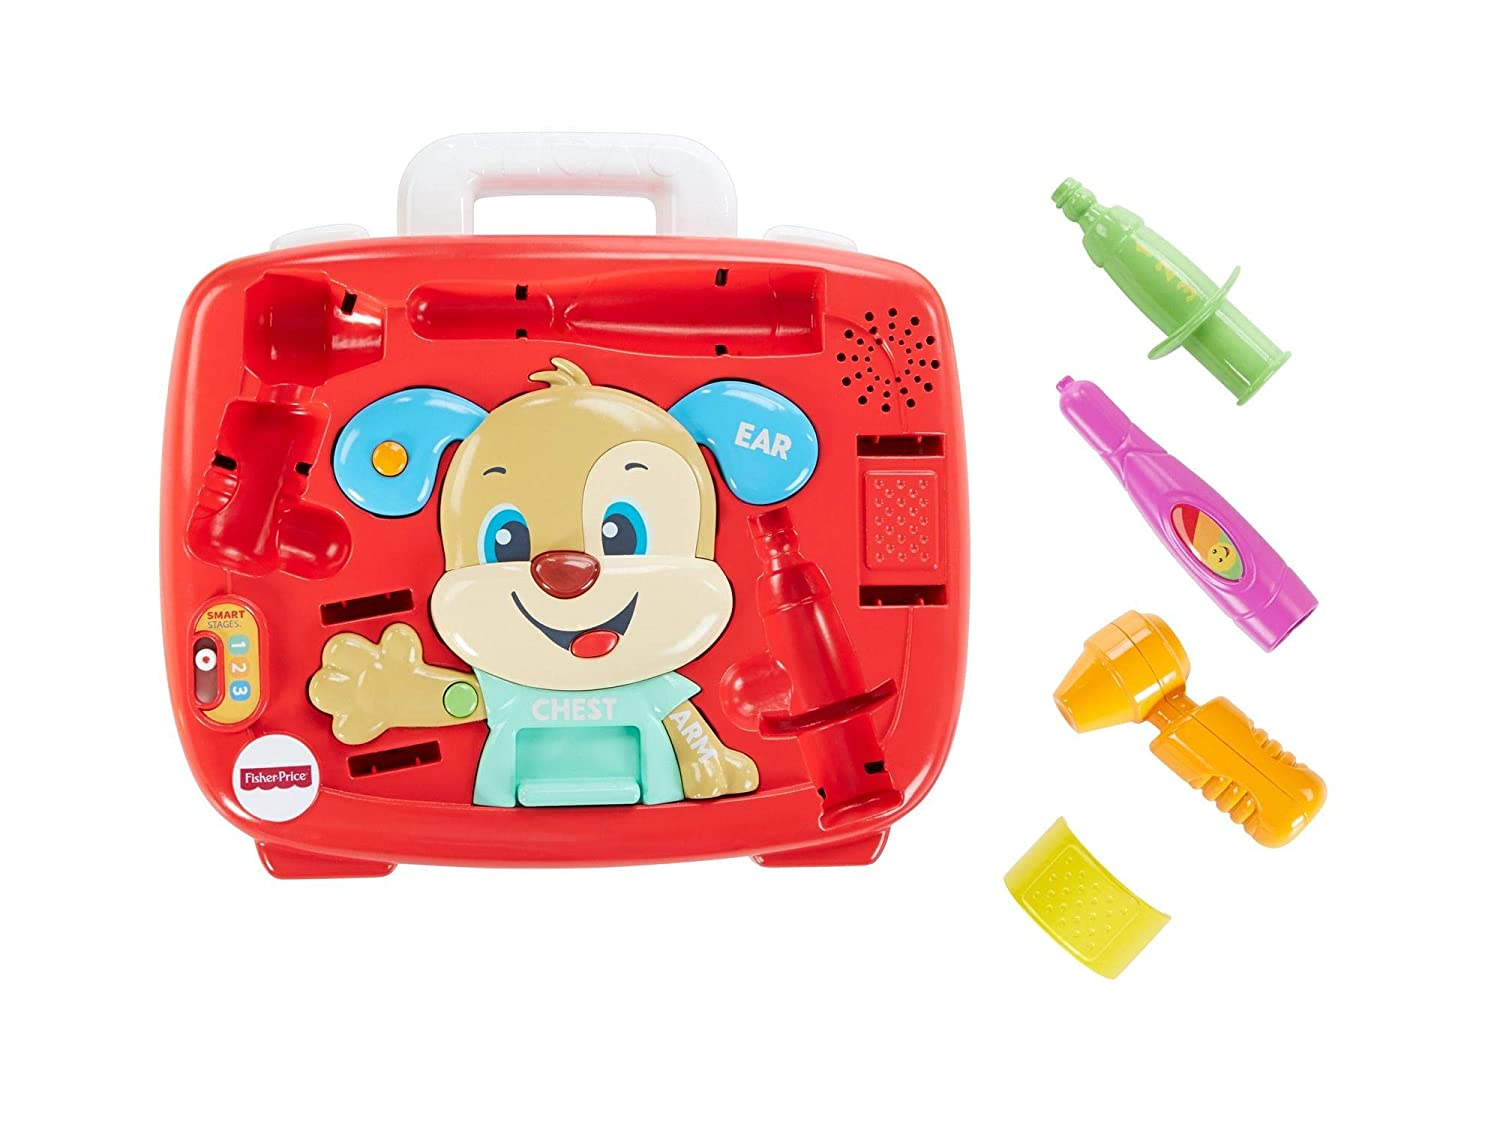 Fisher-Price FTH19 Laugh and Learn Puppy's Check-Up Kit, Doctors Role Play Toy Set for Children Speaking, Suitable for 18 Months Plus Mattel 887961644166